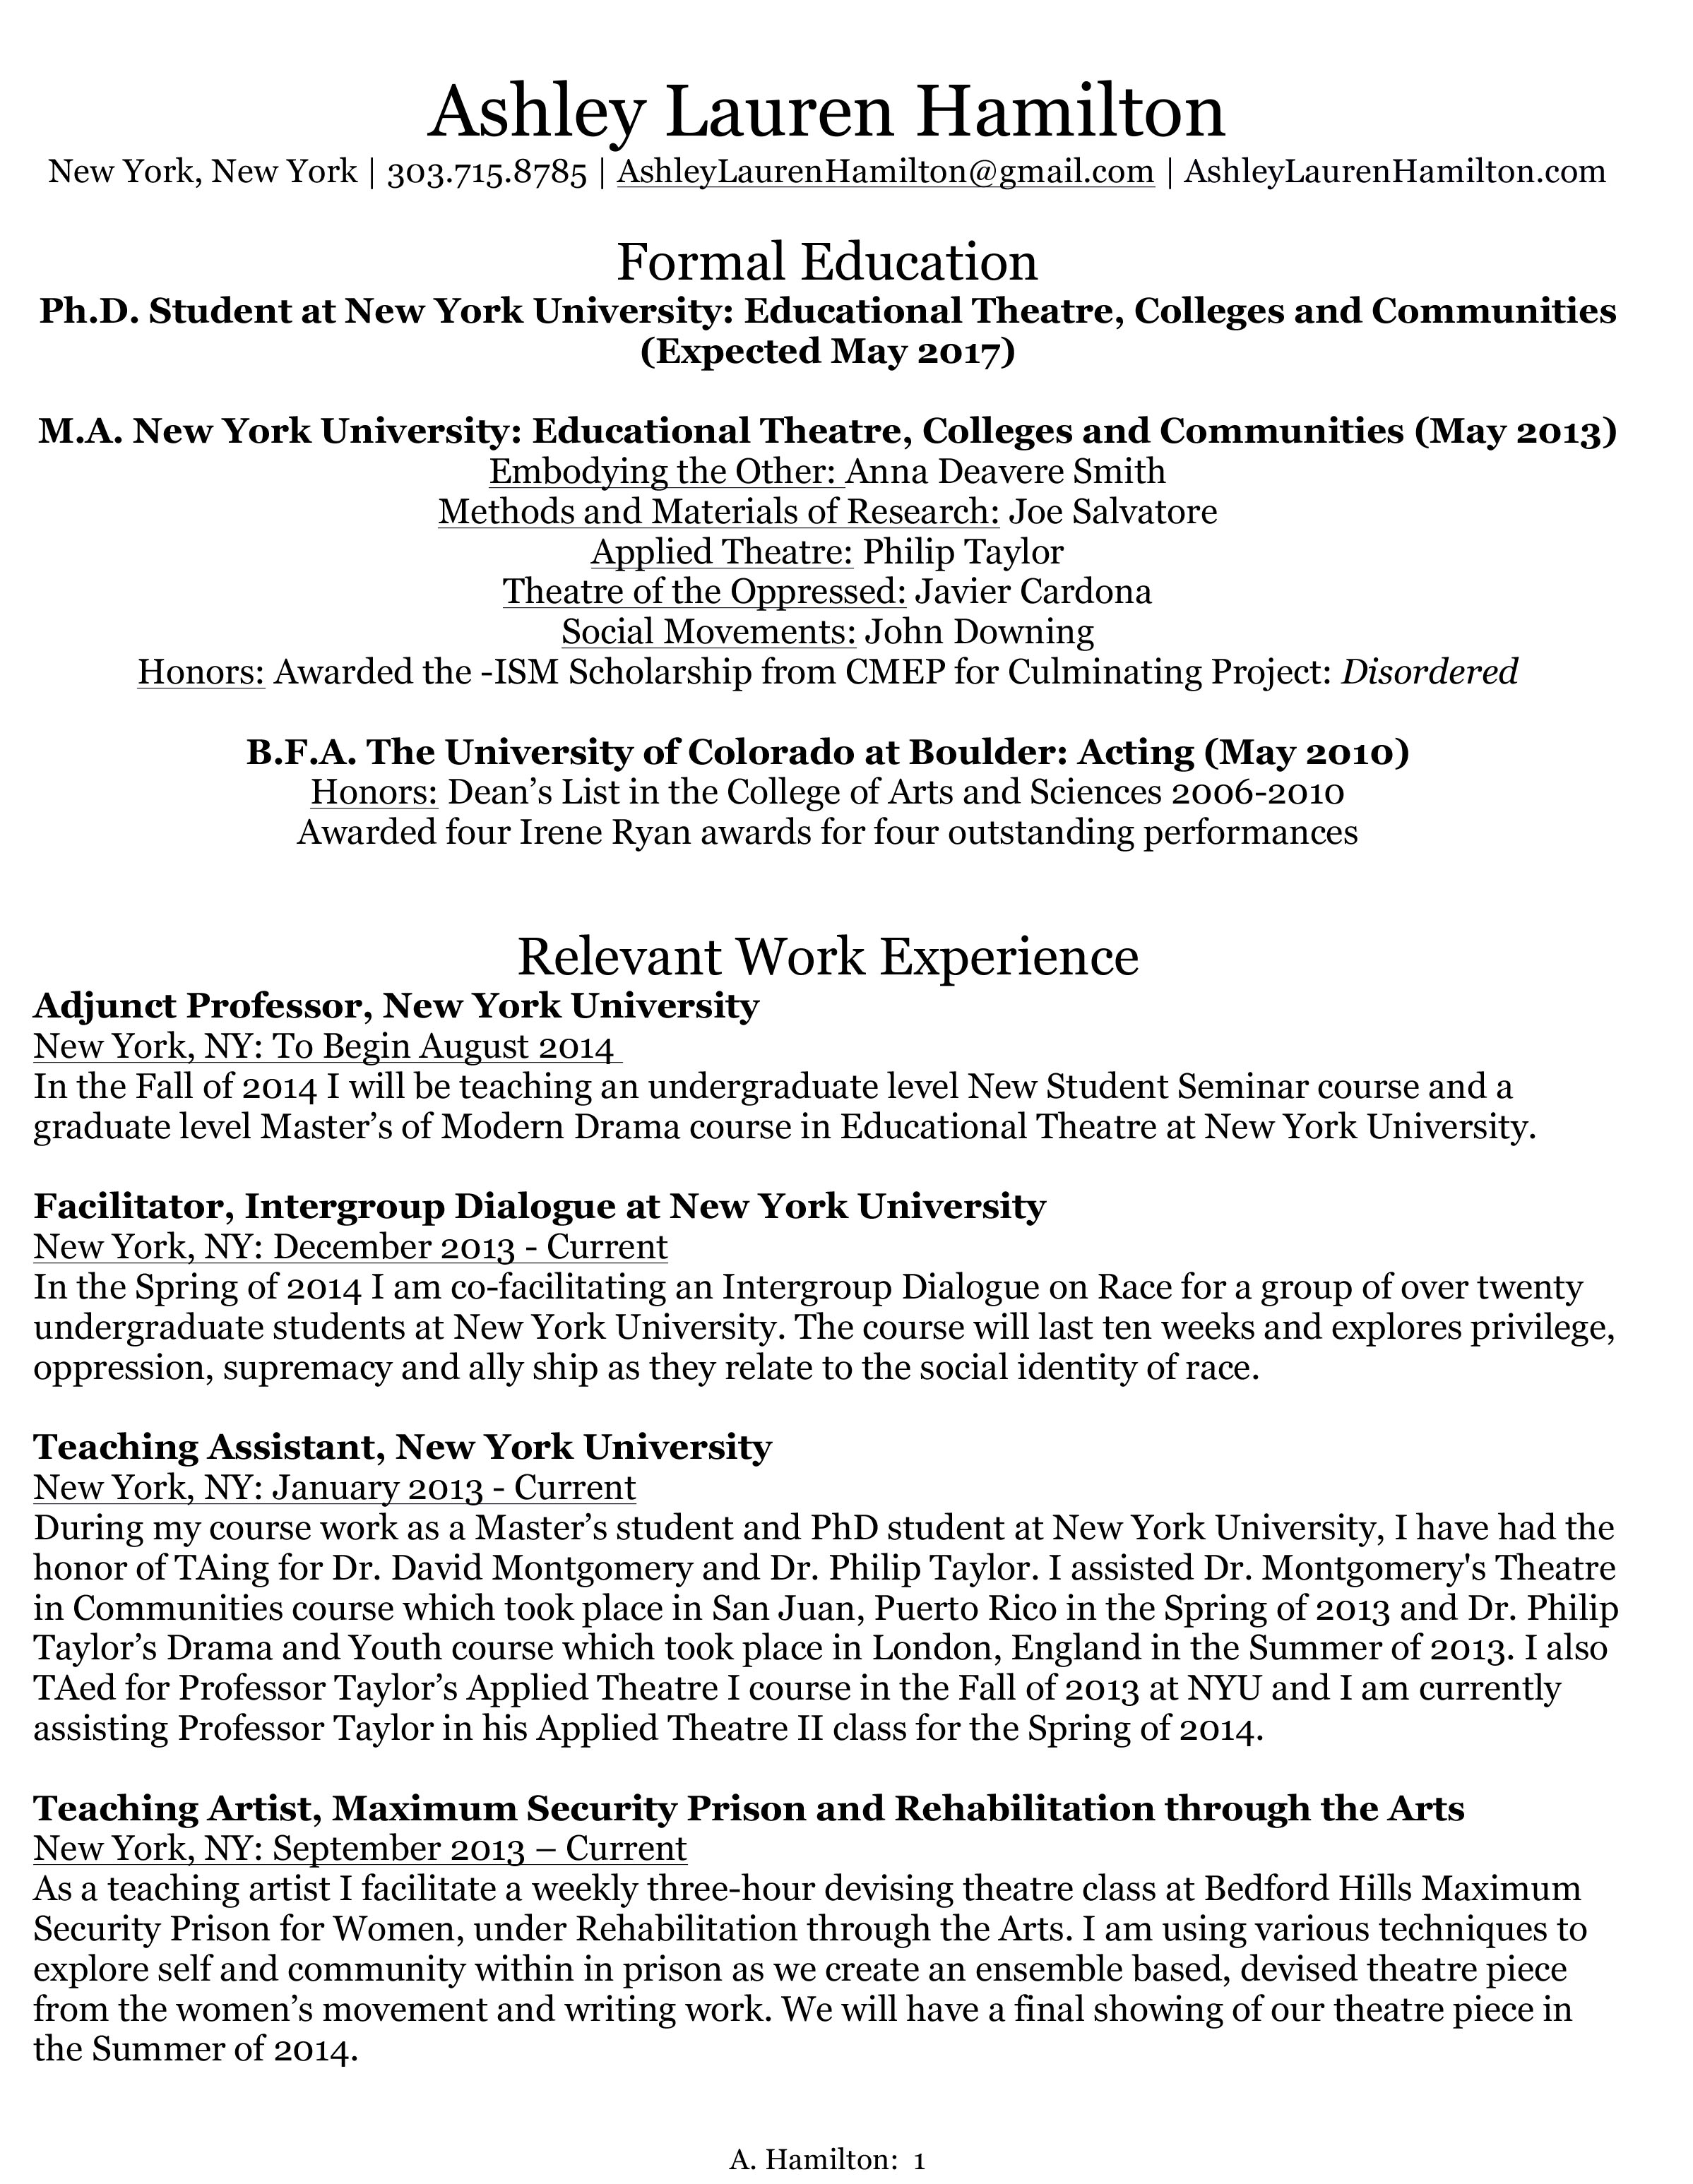 Revised Resume Help Writing A Dissertation Cheap Online Service